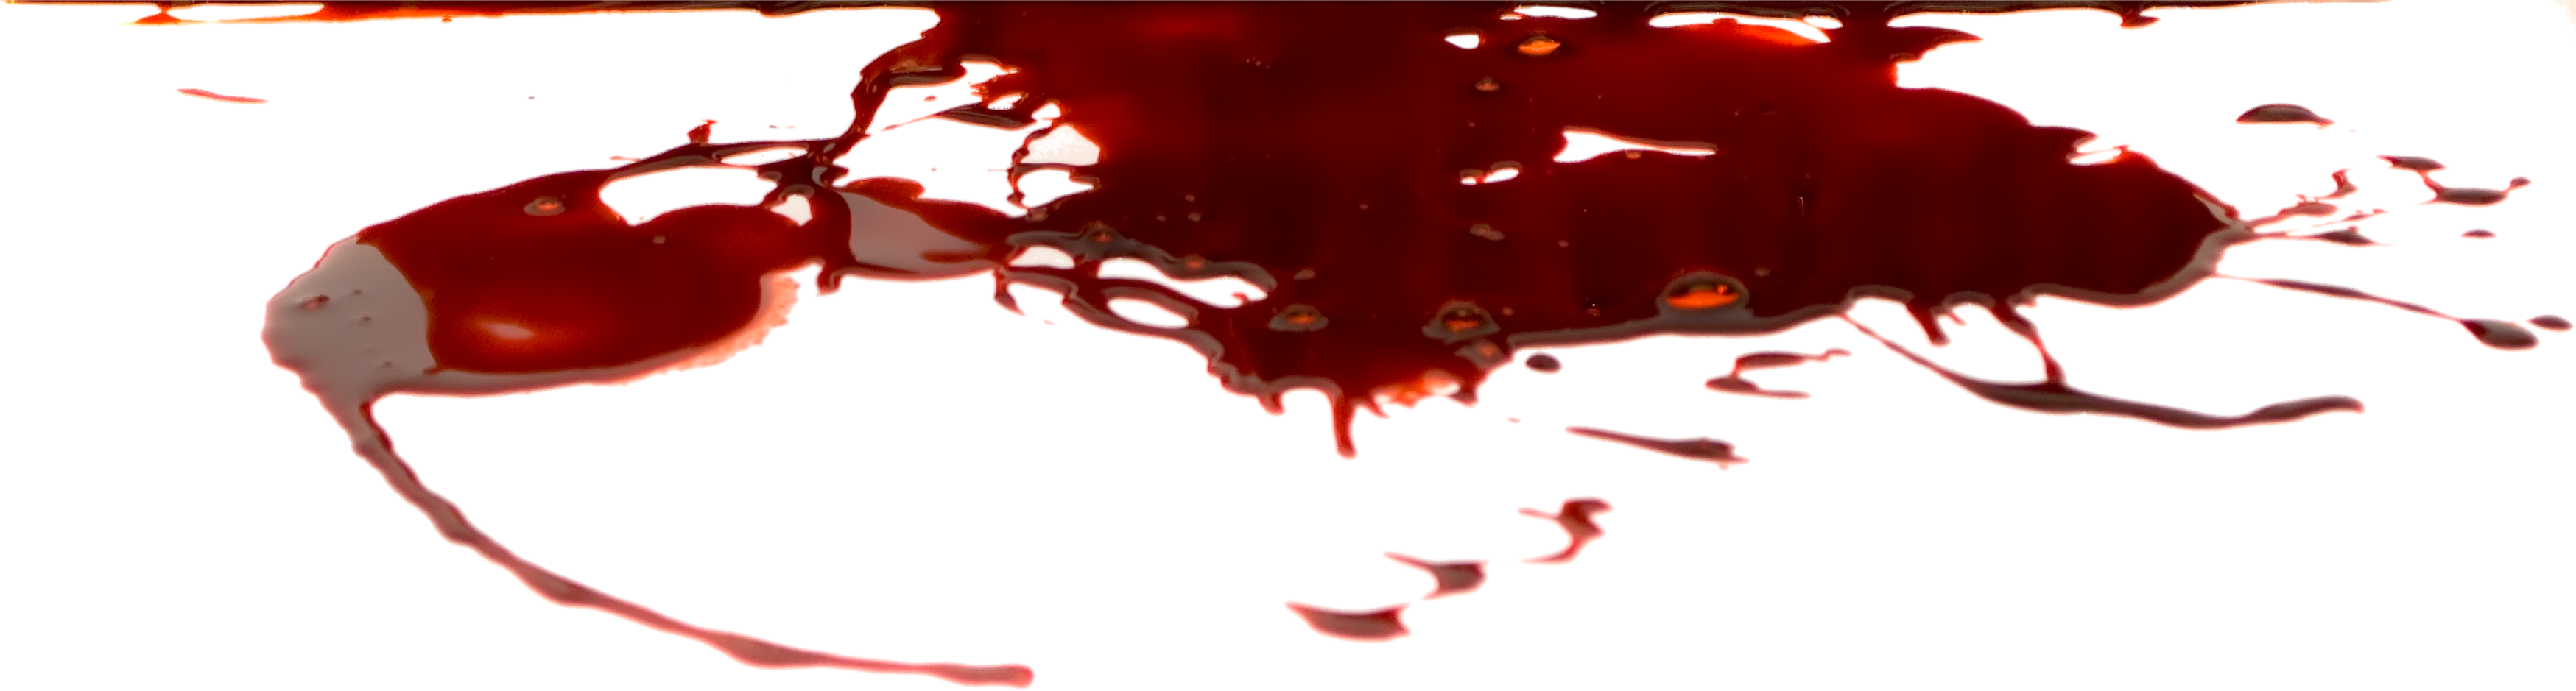 Images free download splashes. Bullet hole blood png